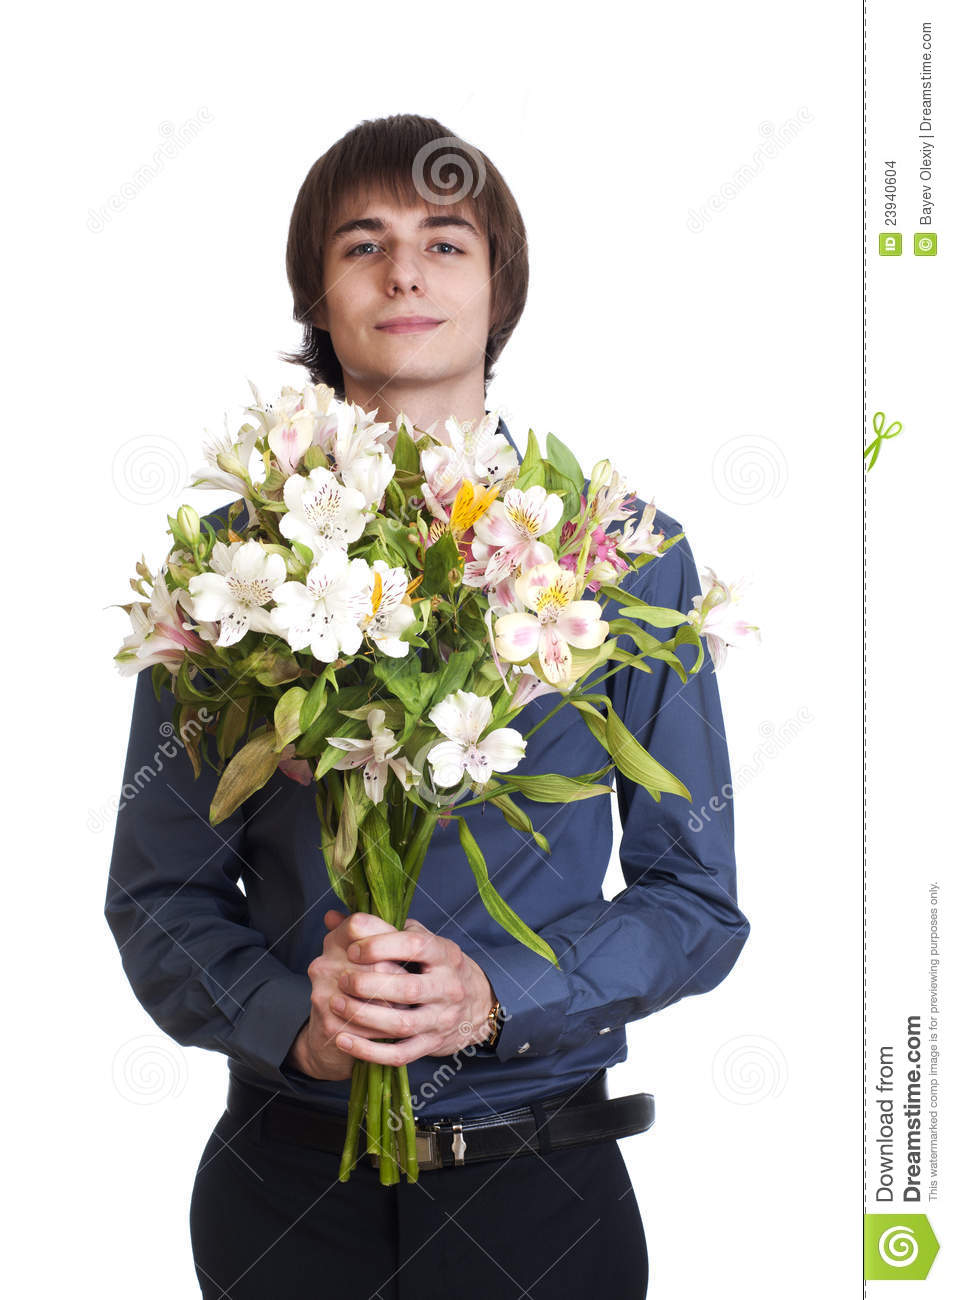 Happy Men Hold Bouquet Of Flowers Stock Photo Image Of Relations